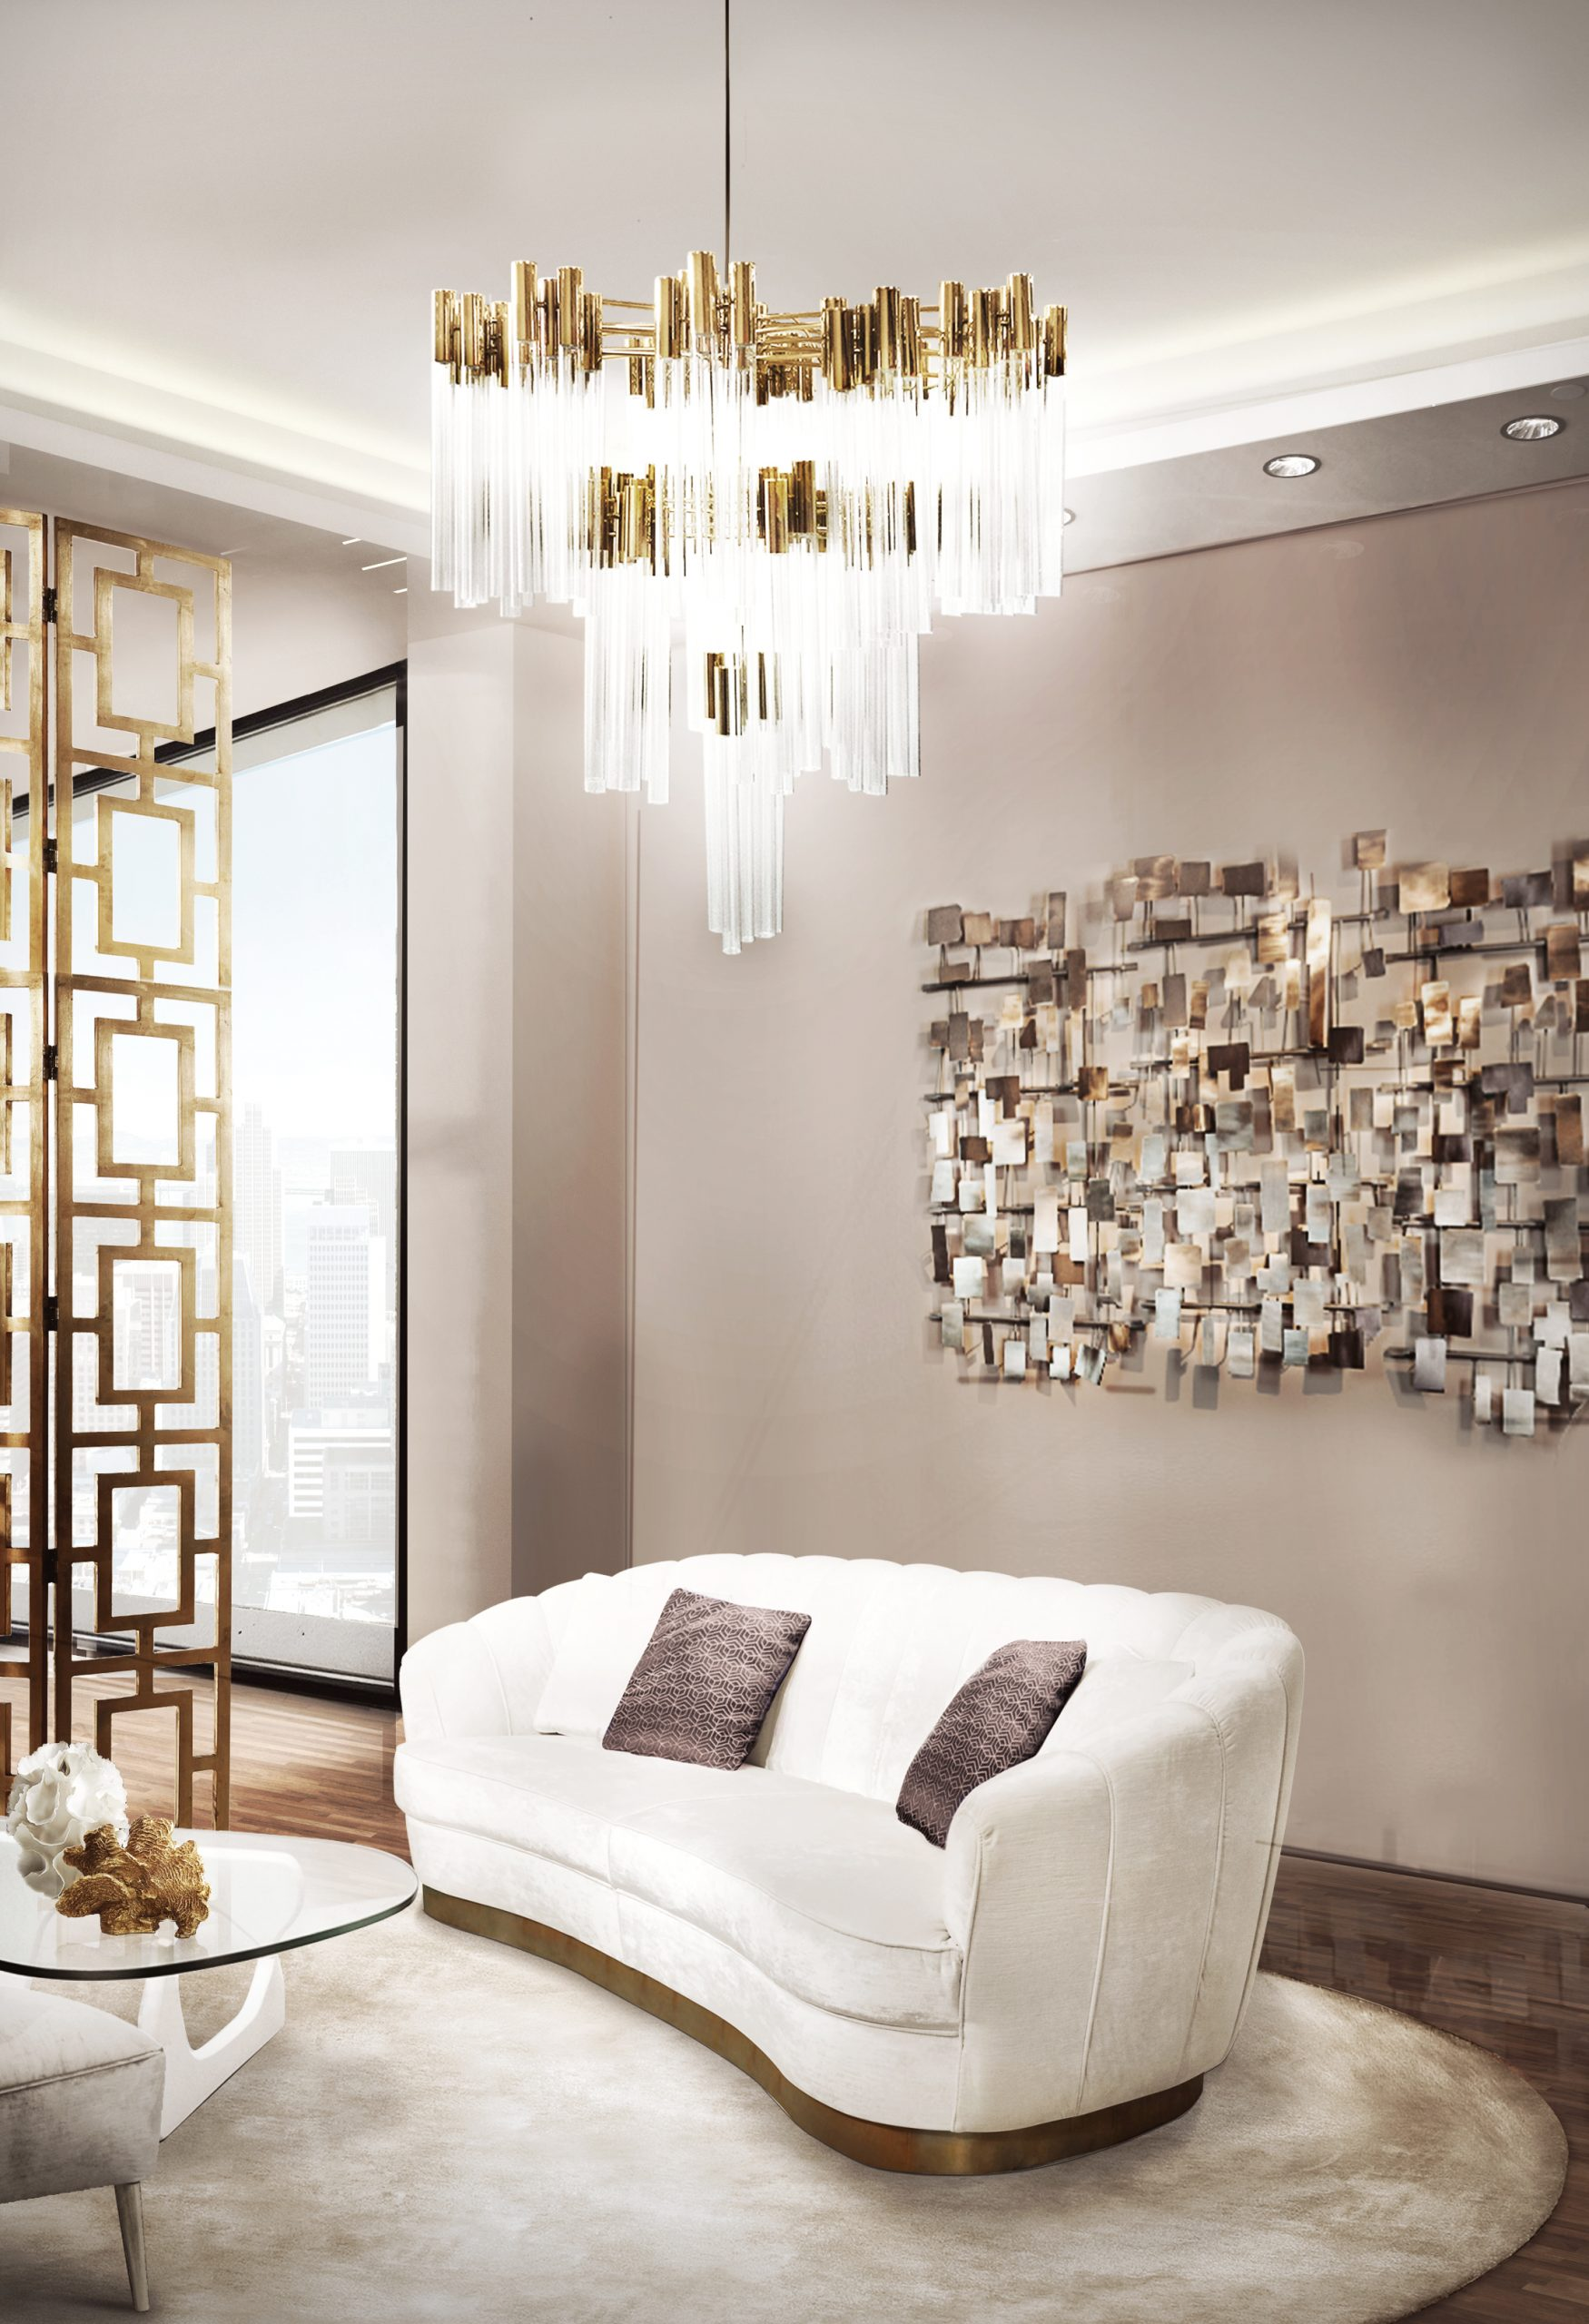 Crystal Chandeliers: 5 Timeless Lights For The Perfect Atmosphere